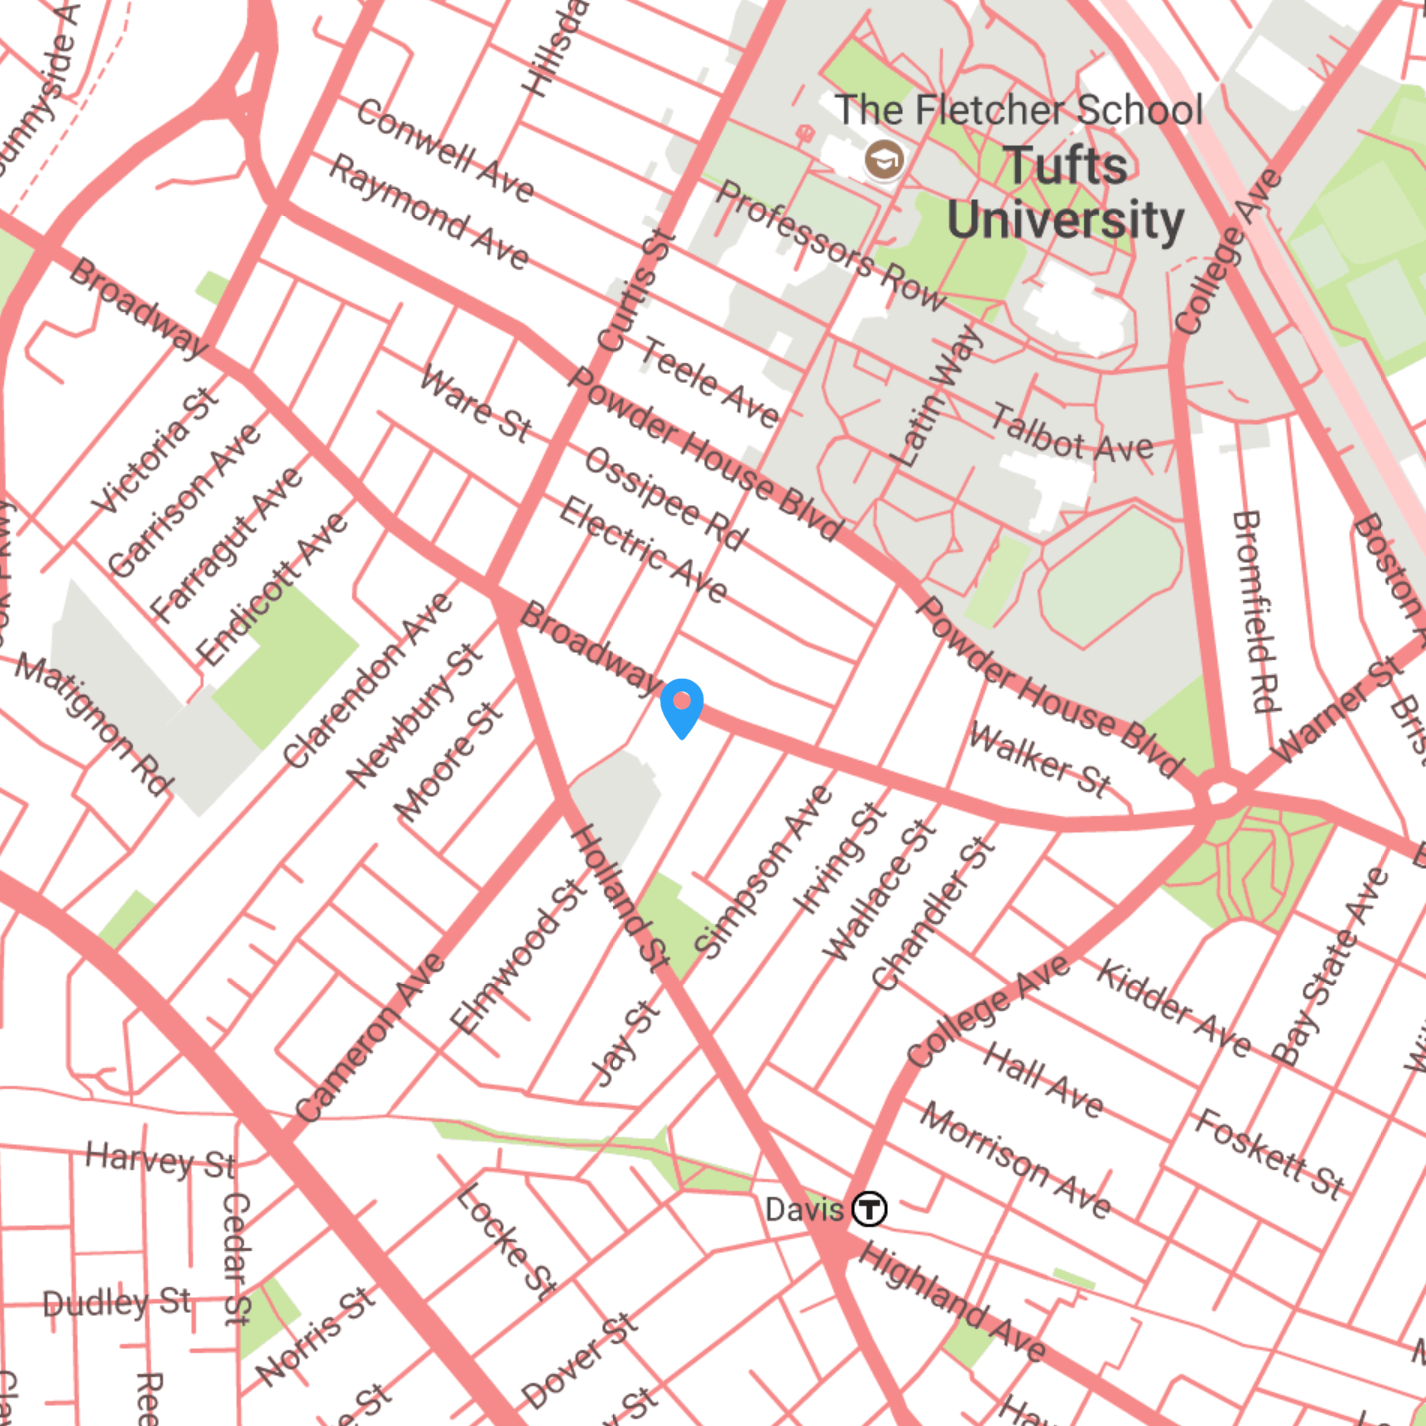 Map of the location of Powderhouse Studios campus